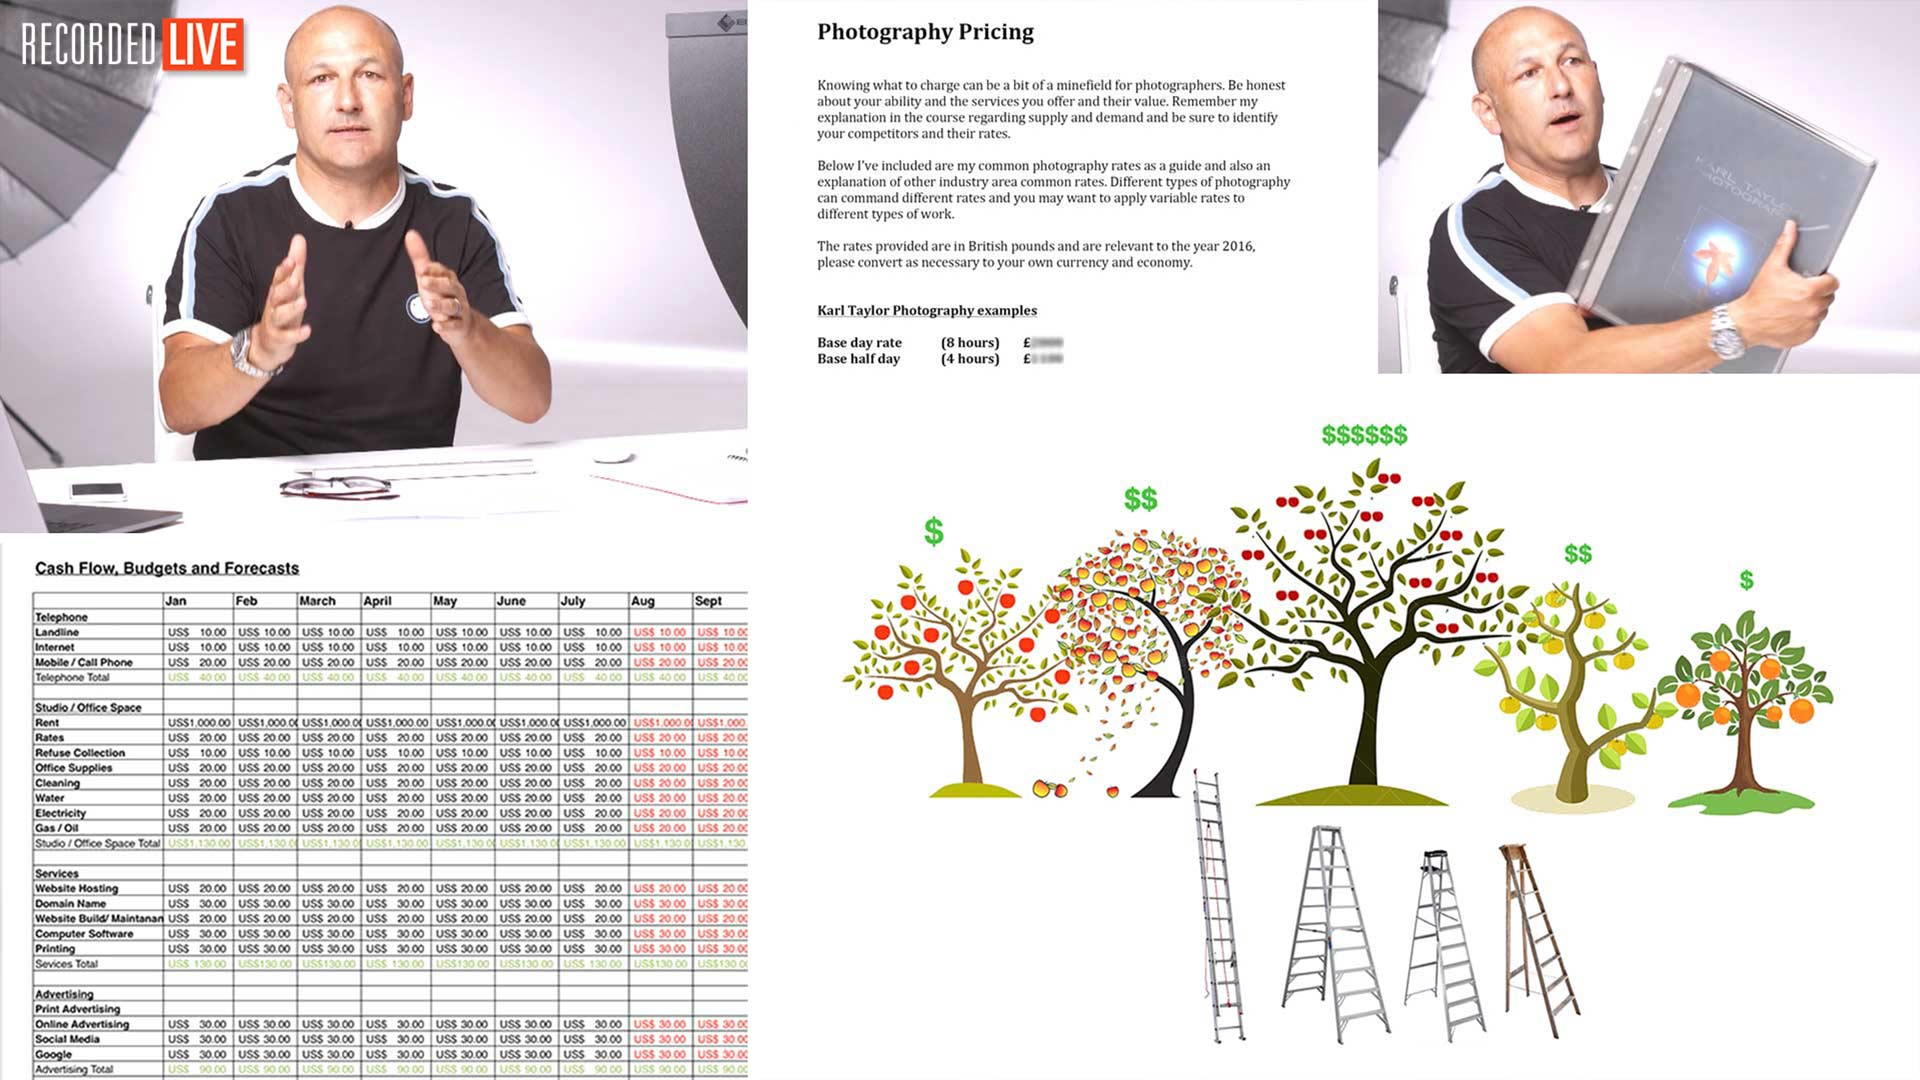 Business Advice For Photographers: Supply & Demand, Pricing & Marketing